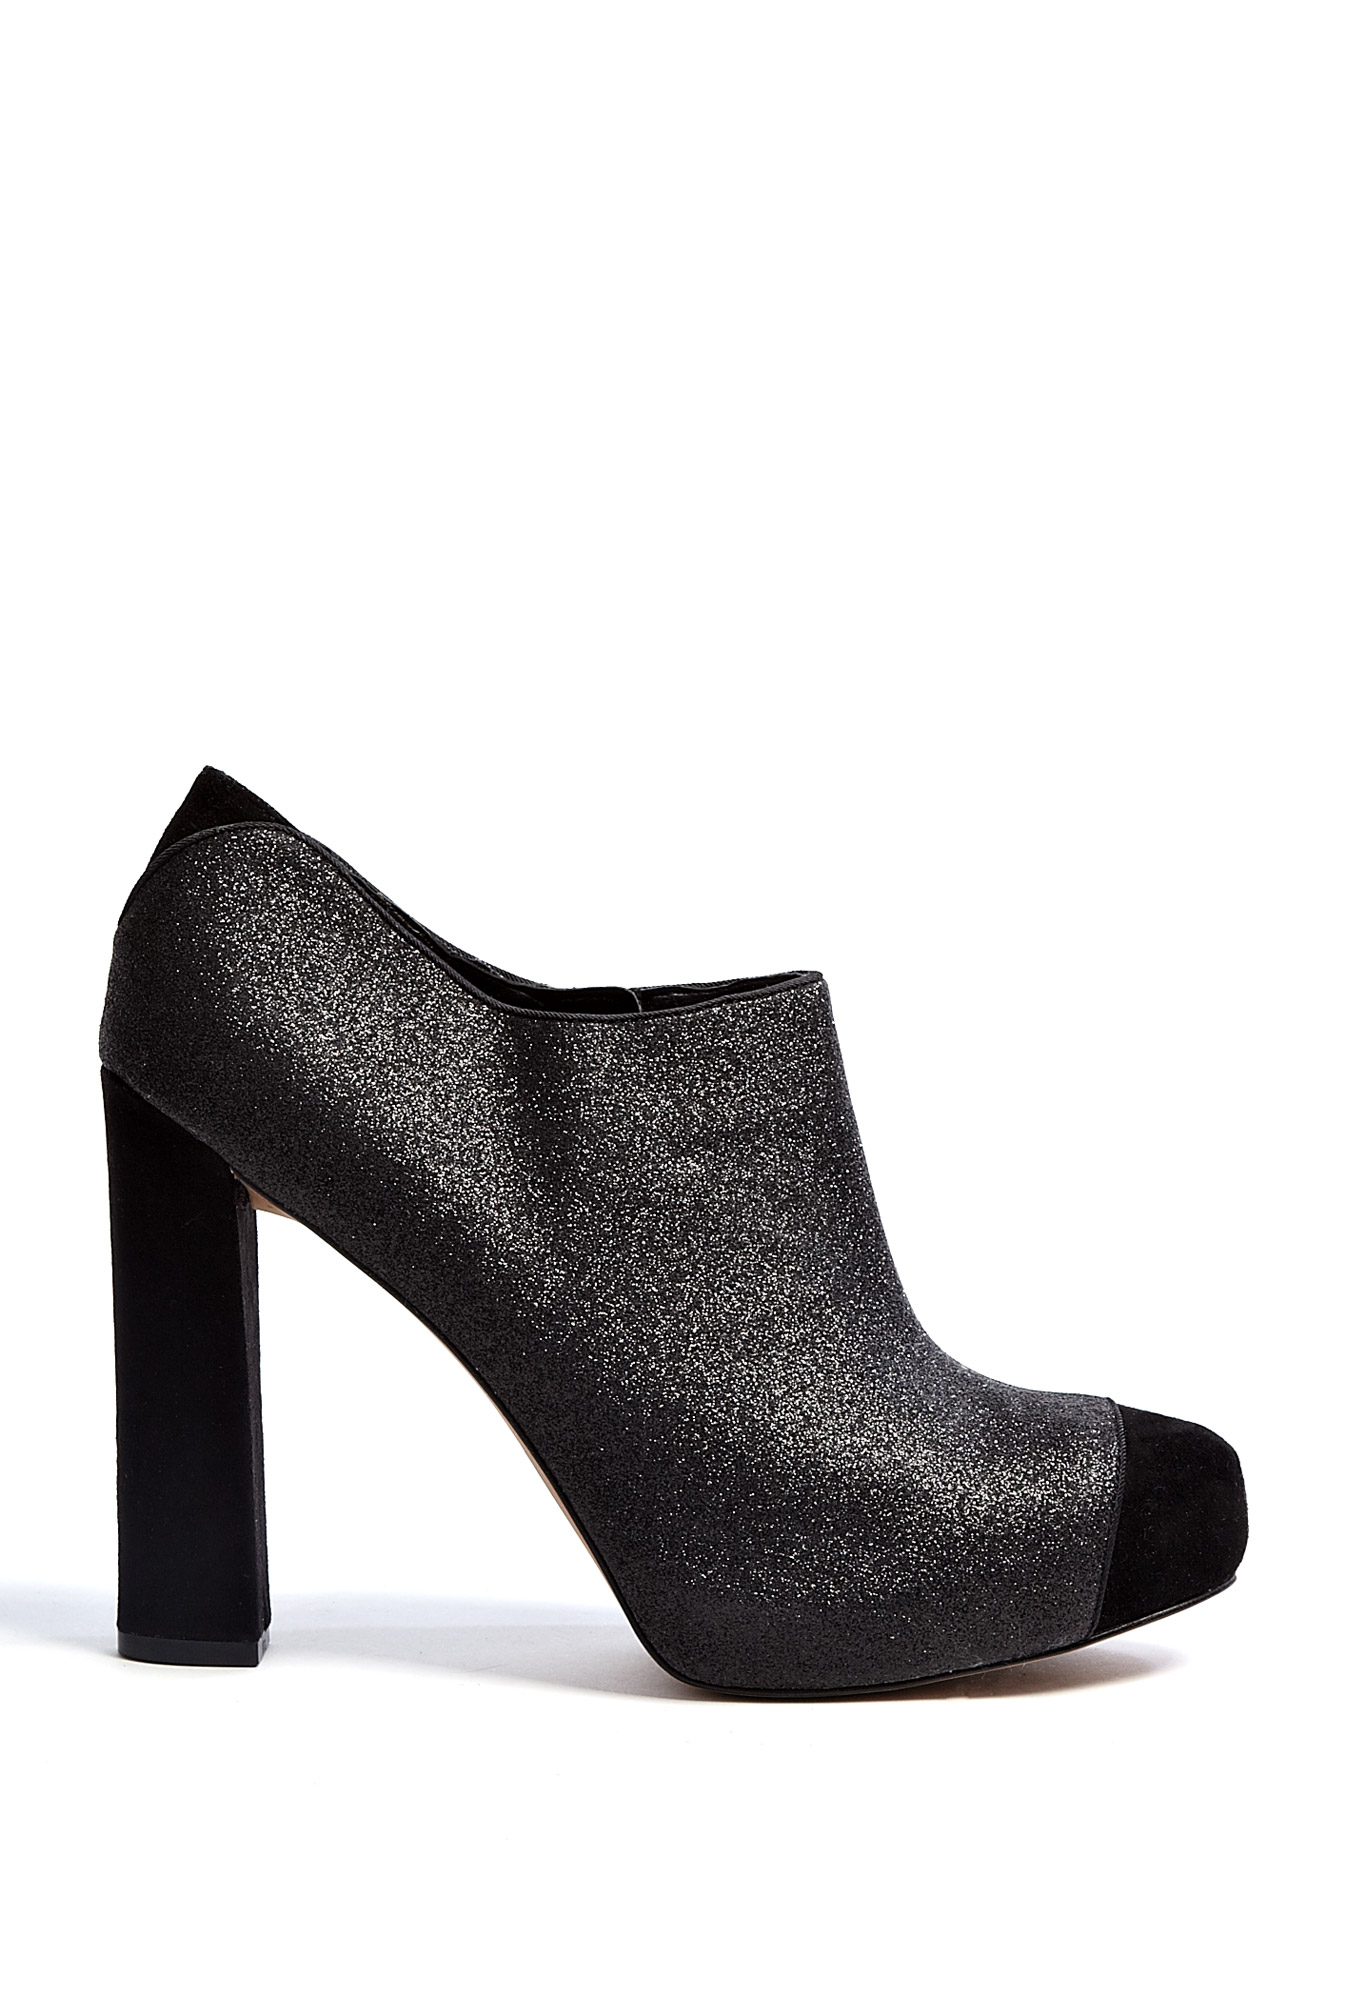 sam edelman felix stardust glitter and suede ankle boots